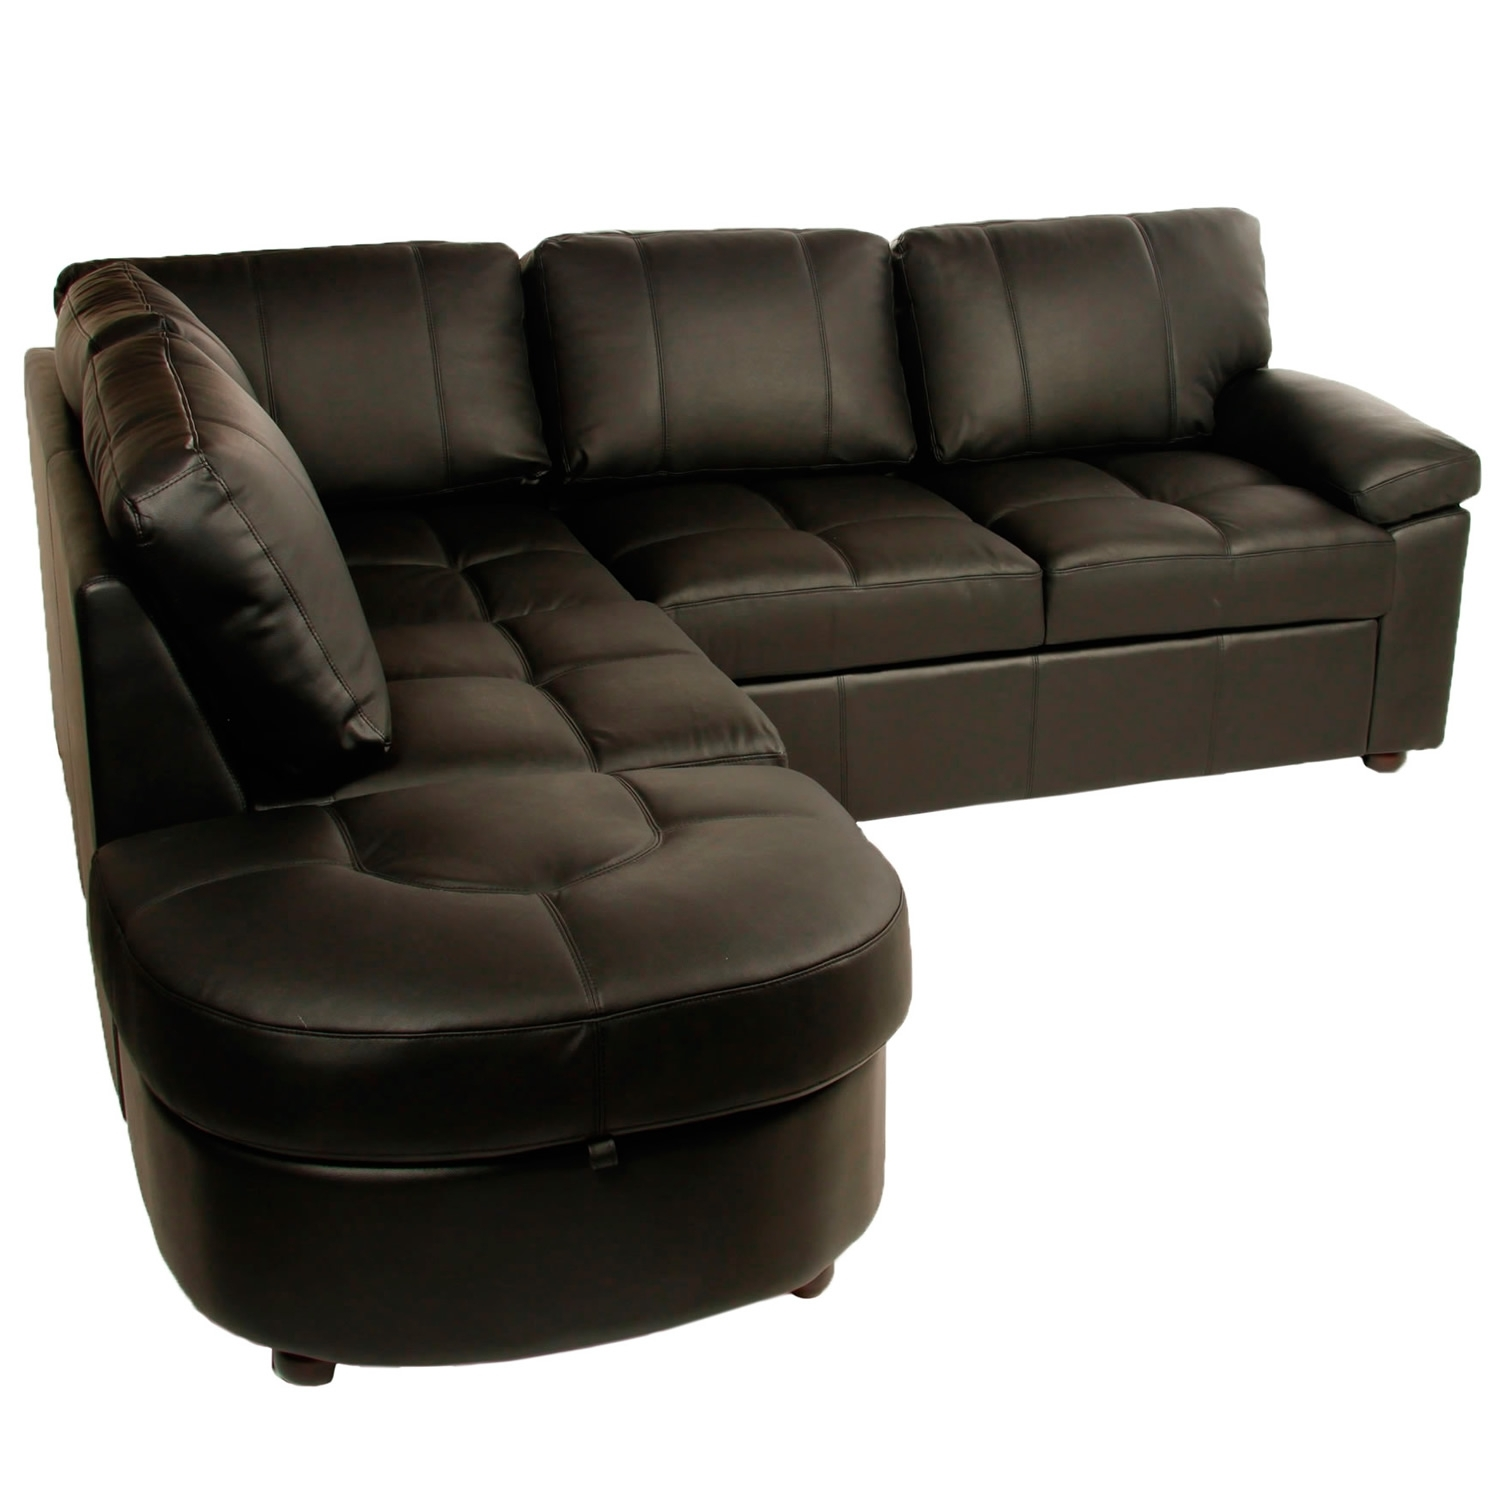 Lina Black Leather Corner Sofa Bed With Storage – Sofabedsworld.co with Leather Sofas With Storage (Image 5 of 10)